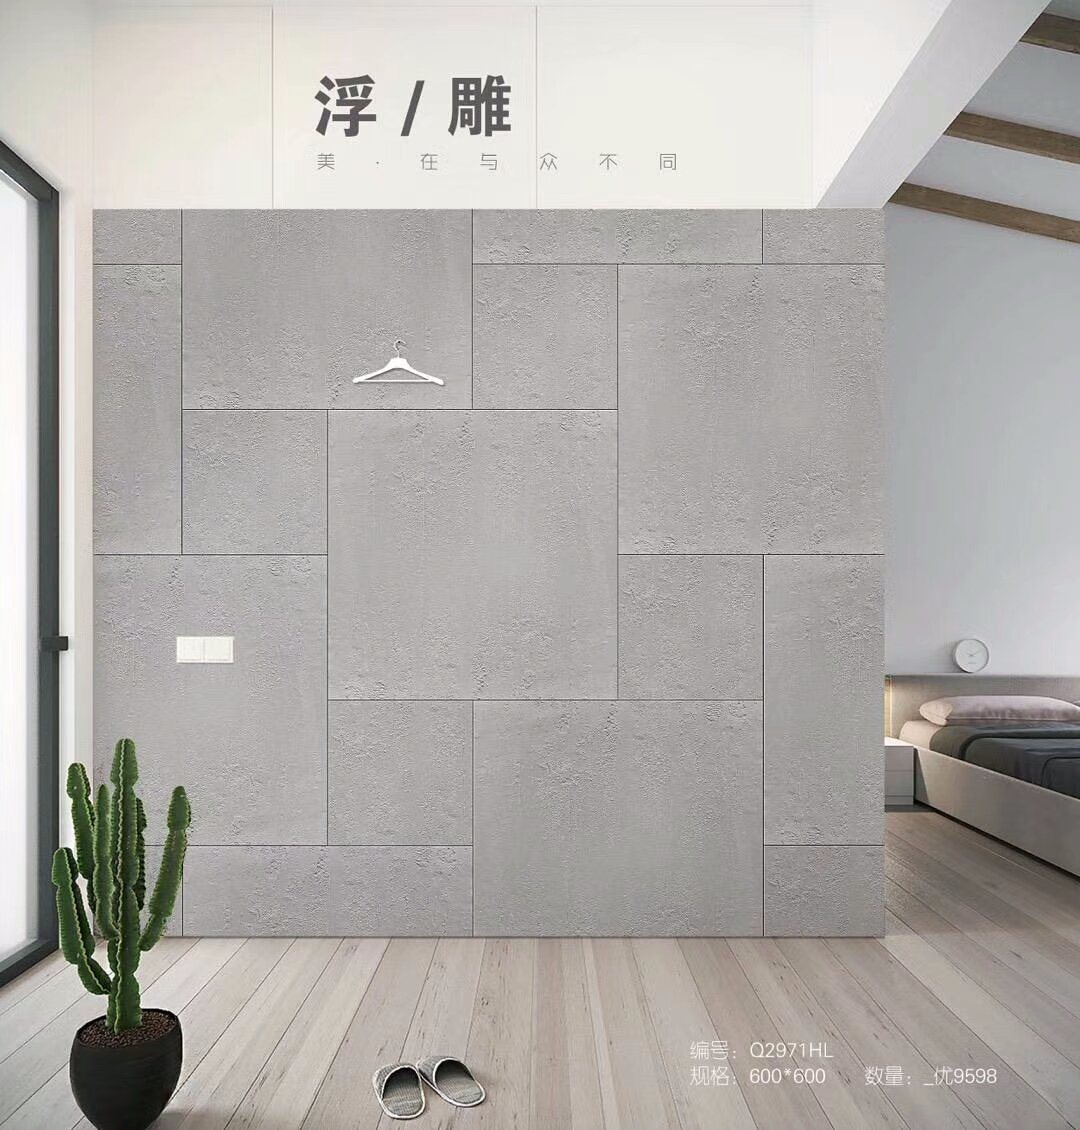 China marble tile floor tile full polished glazed tile supplier china marble tile floor tile full polished glazed tile supplier foshan zdy ceramics co ltd dailygadgetfo Choice Image